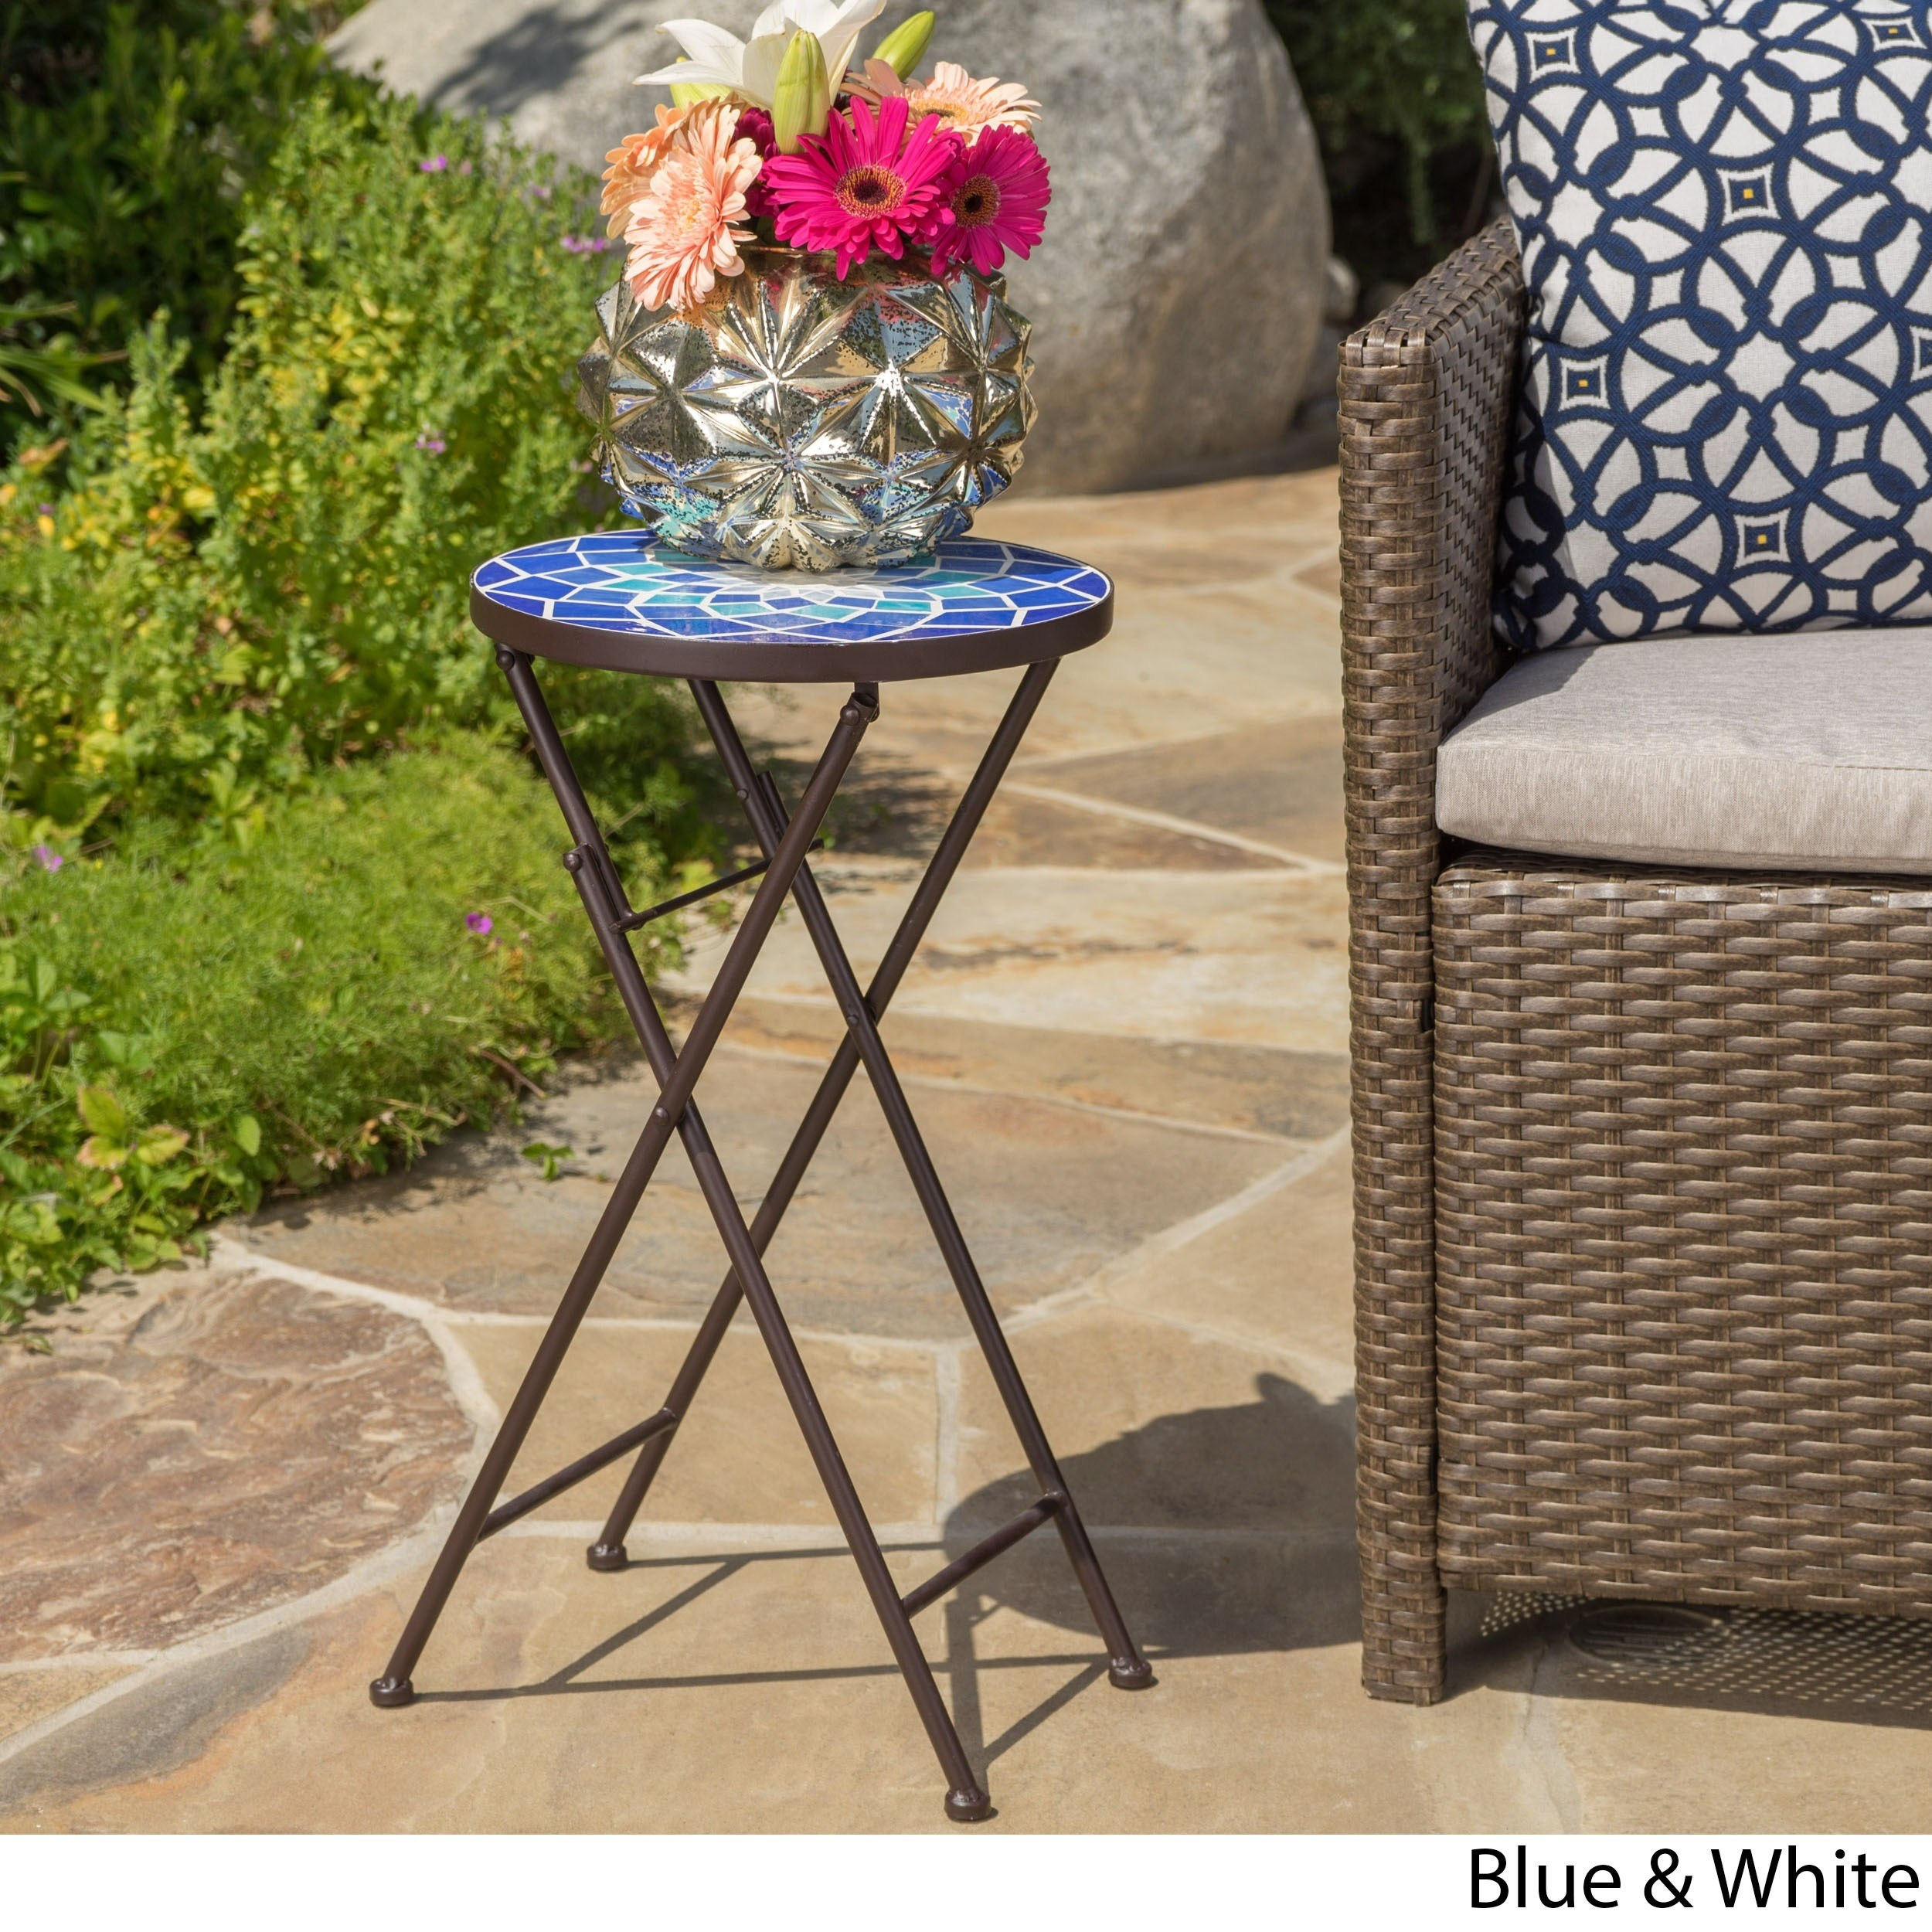 azure outdoor round tile side table planter christopher knight home mosaic stone accent free shipping orders over bar height patio furniture chestnut reclaimed wood coffee drum